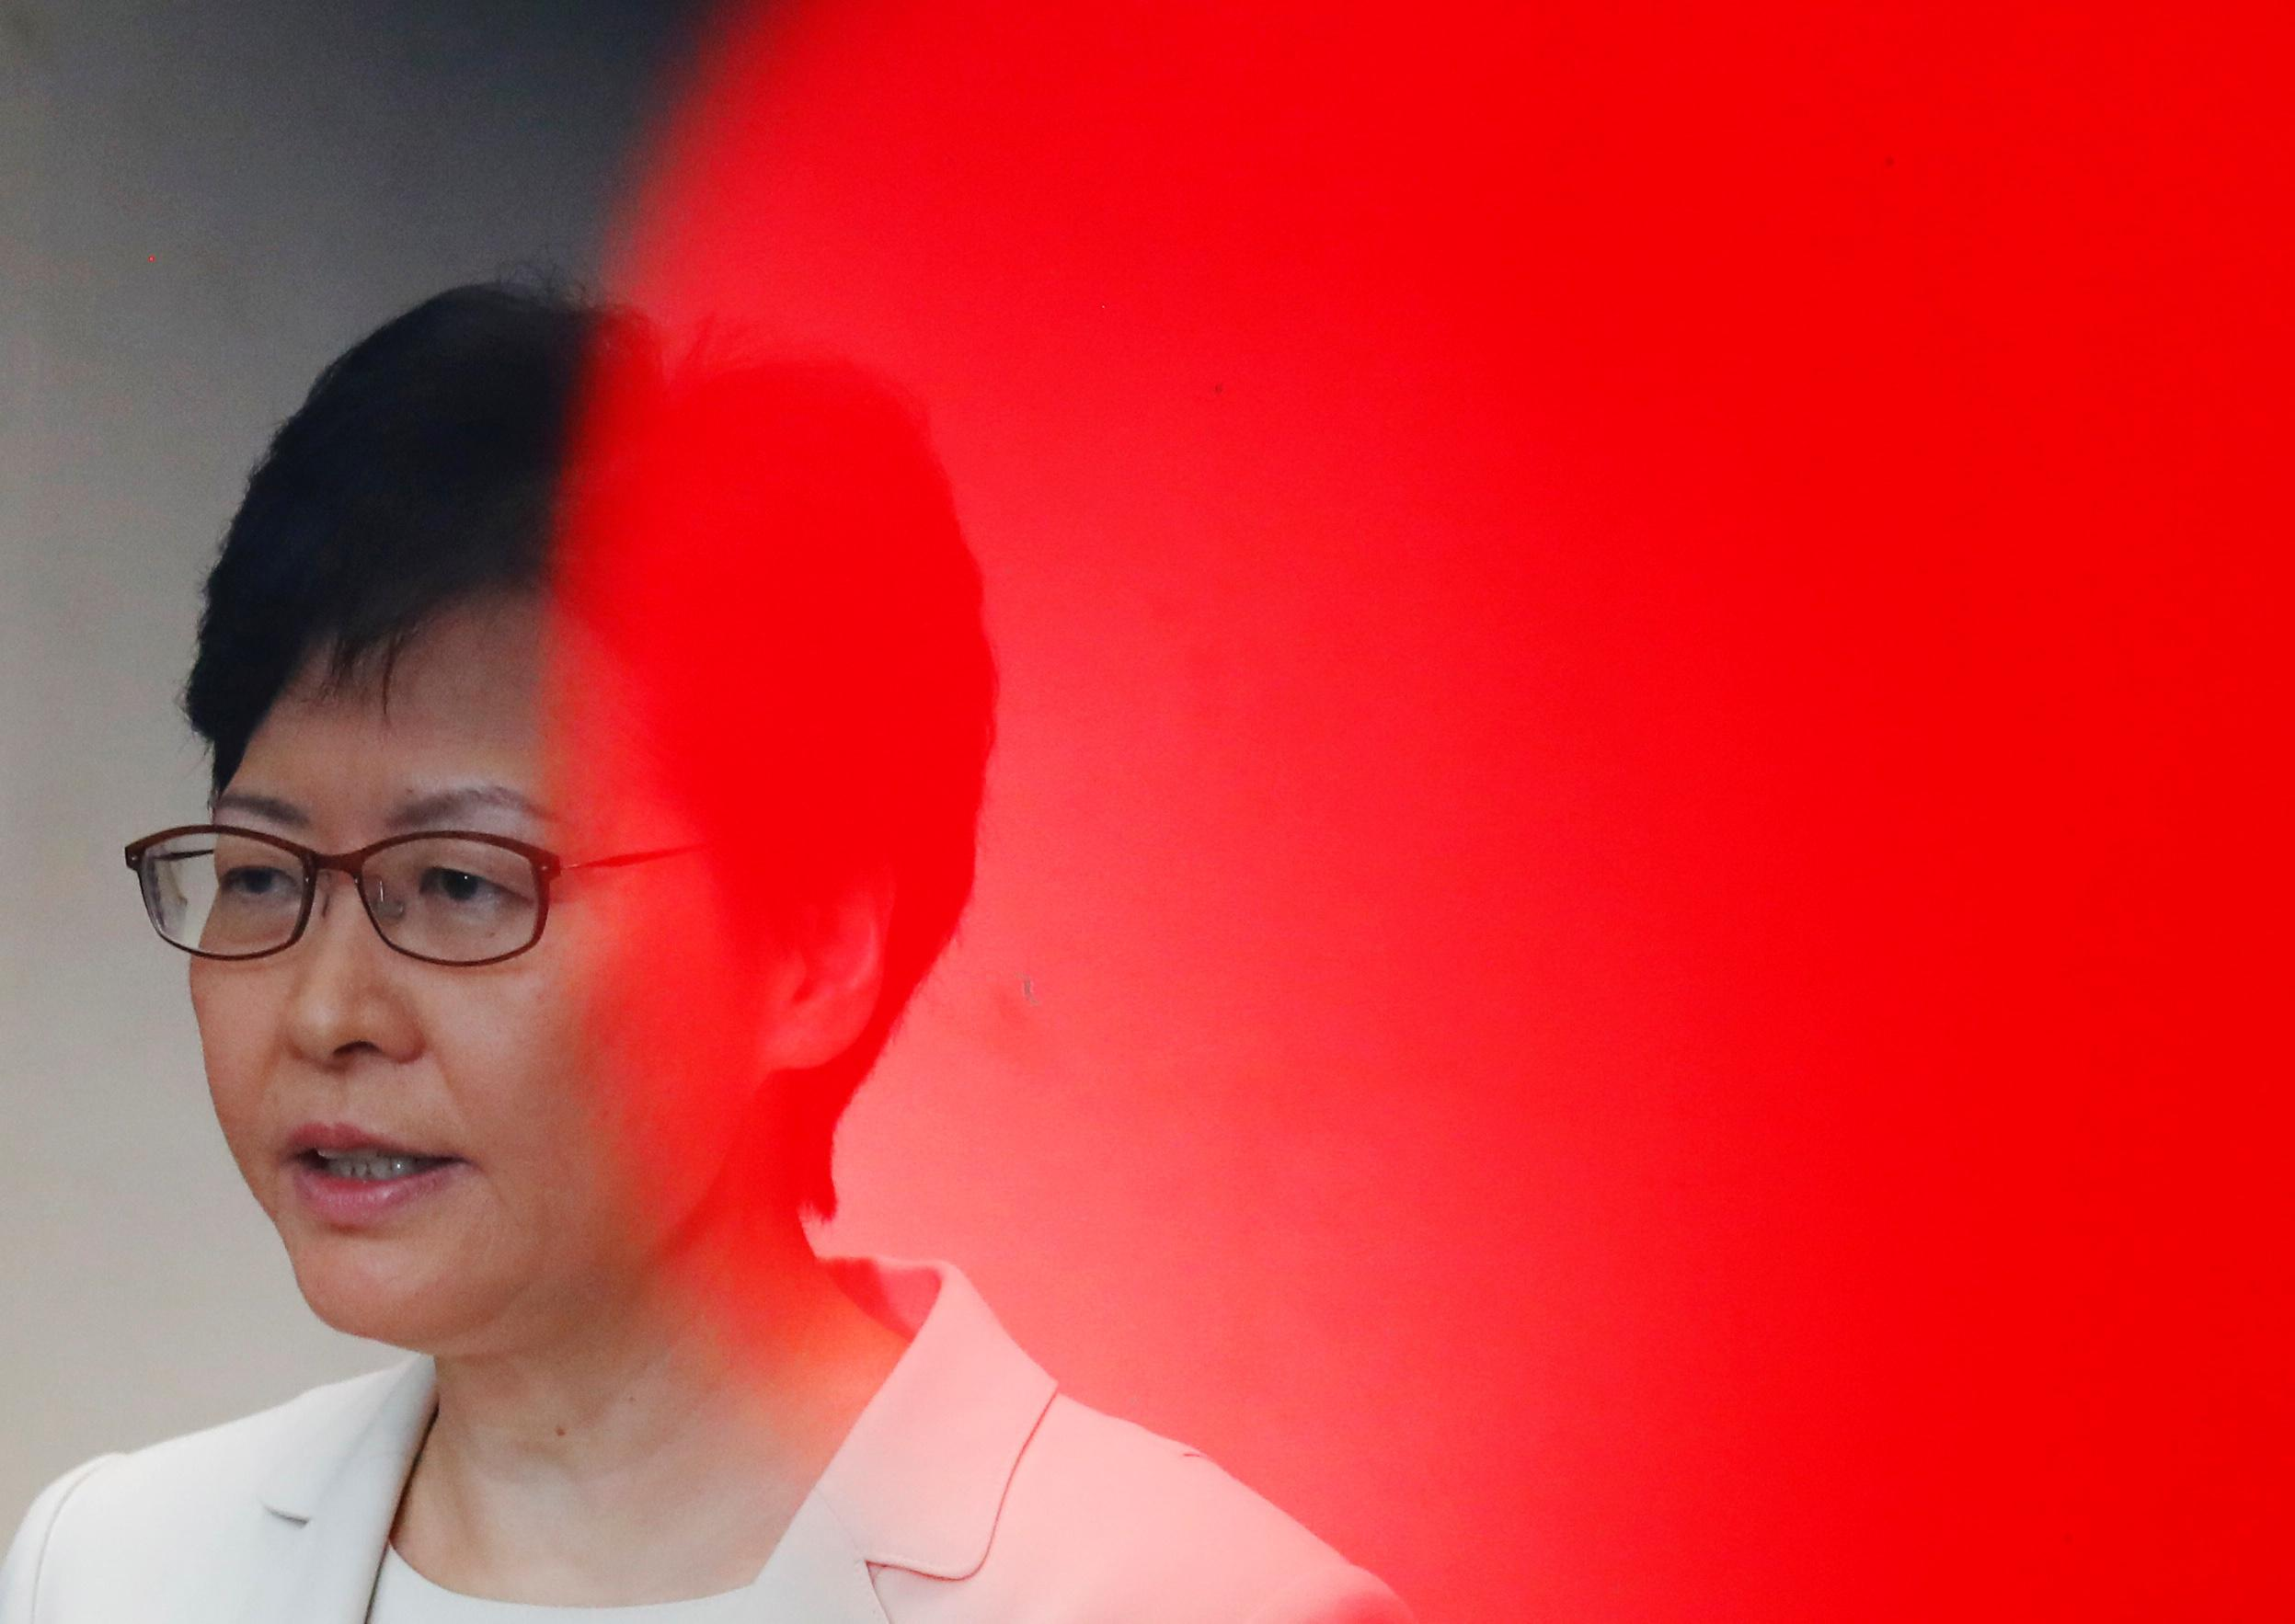 Exclusive: The Chief Executive 'has to serve two masters' - HK leader Carrie Lam – full transcript